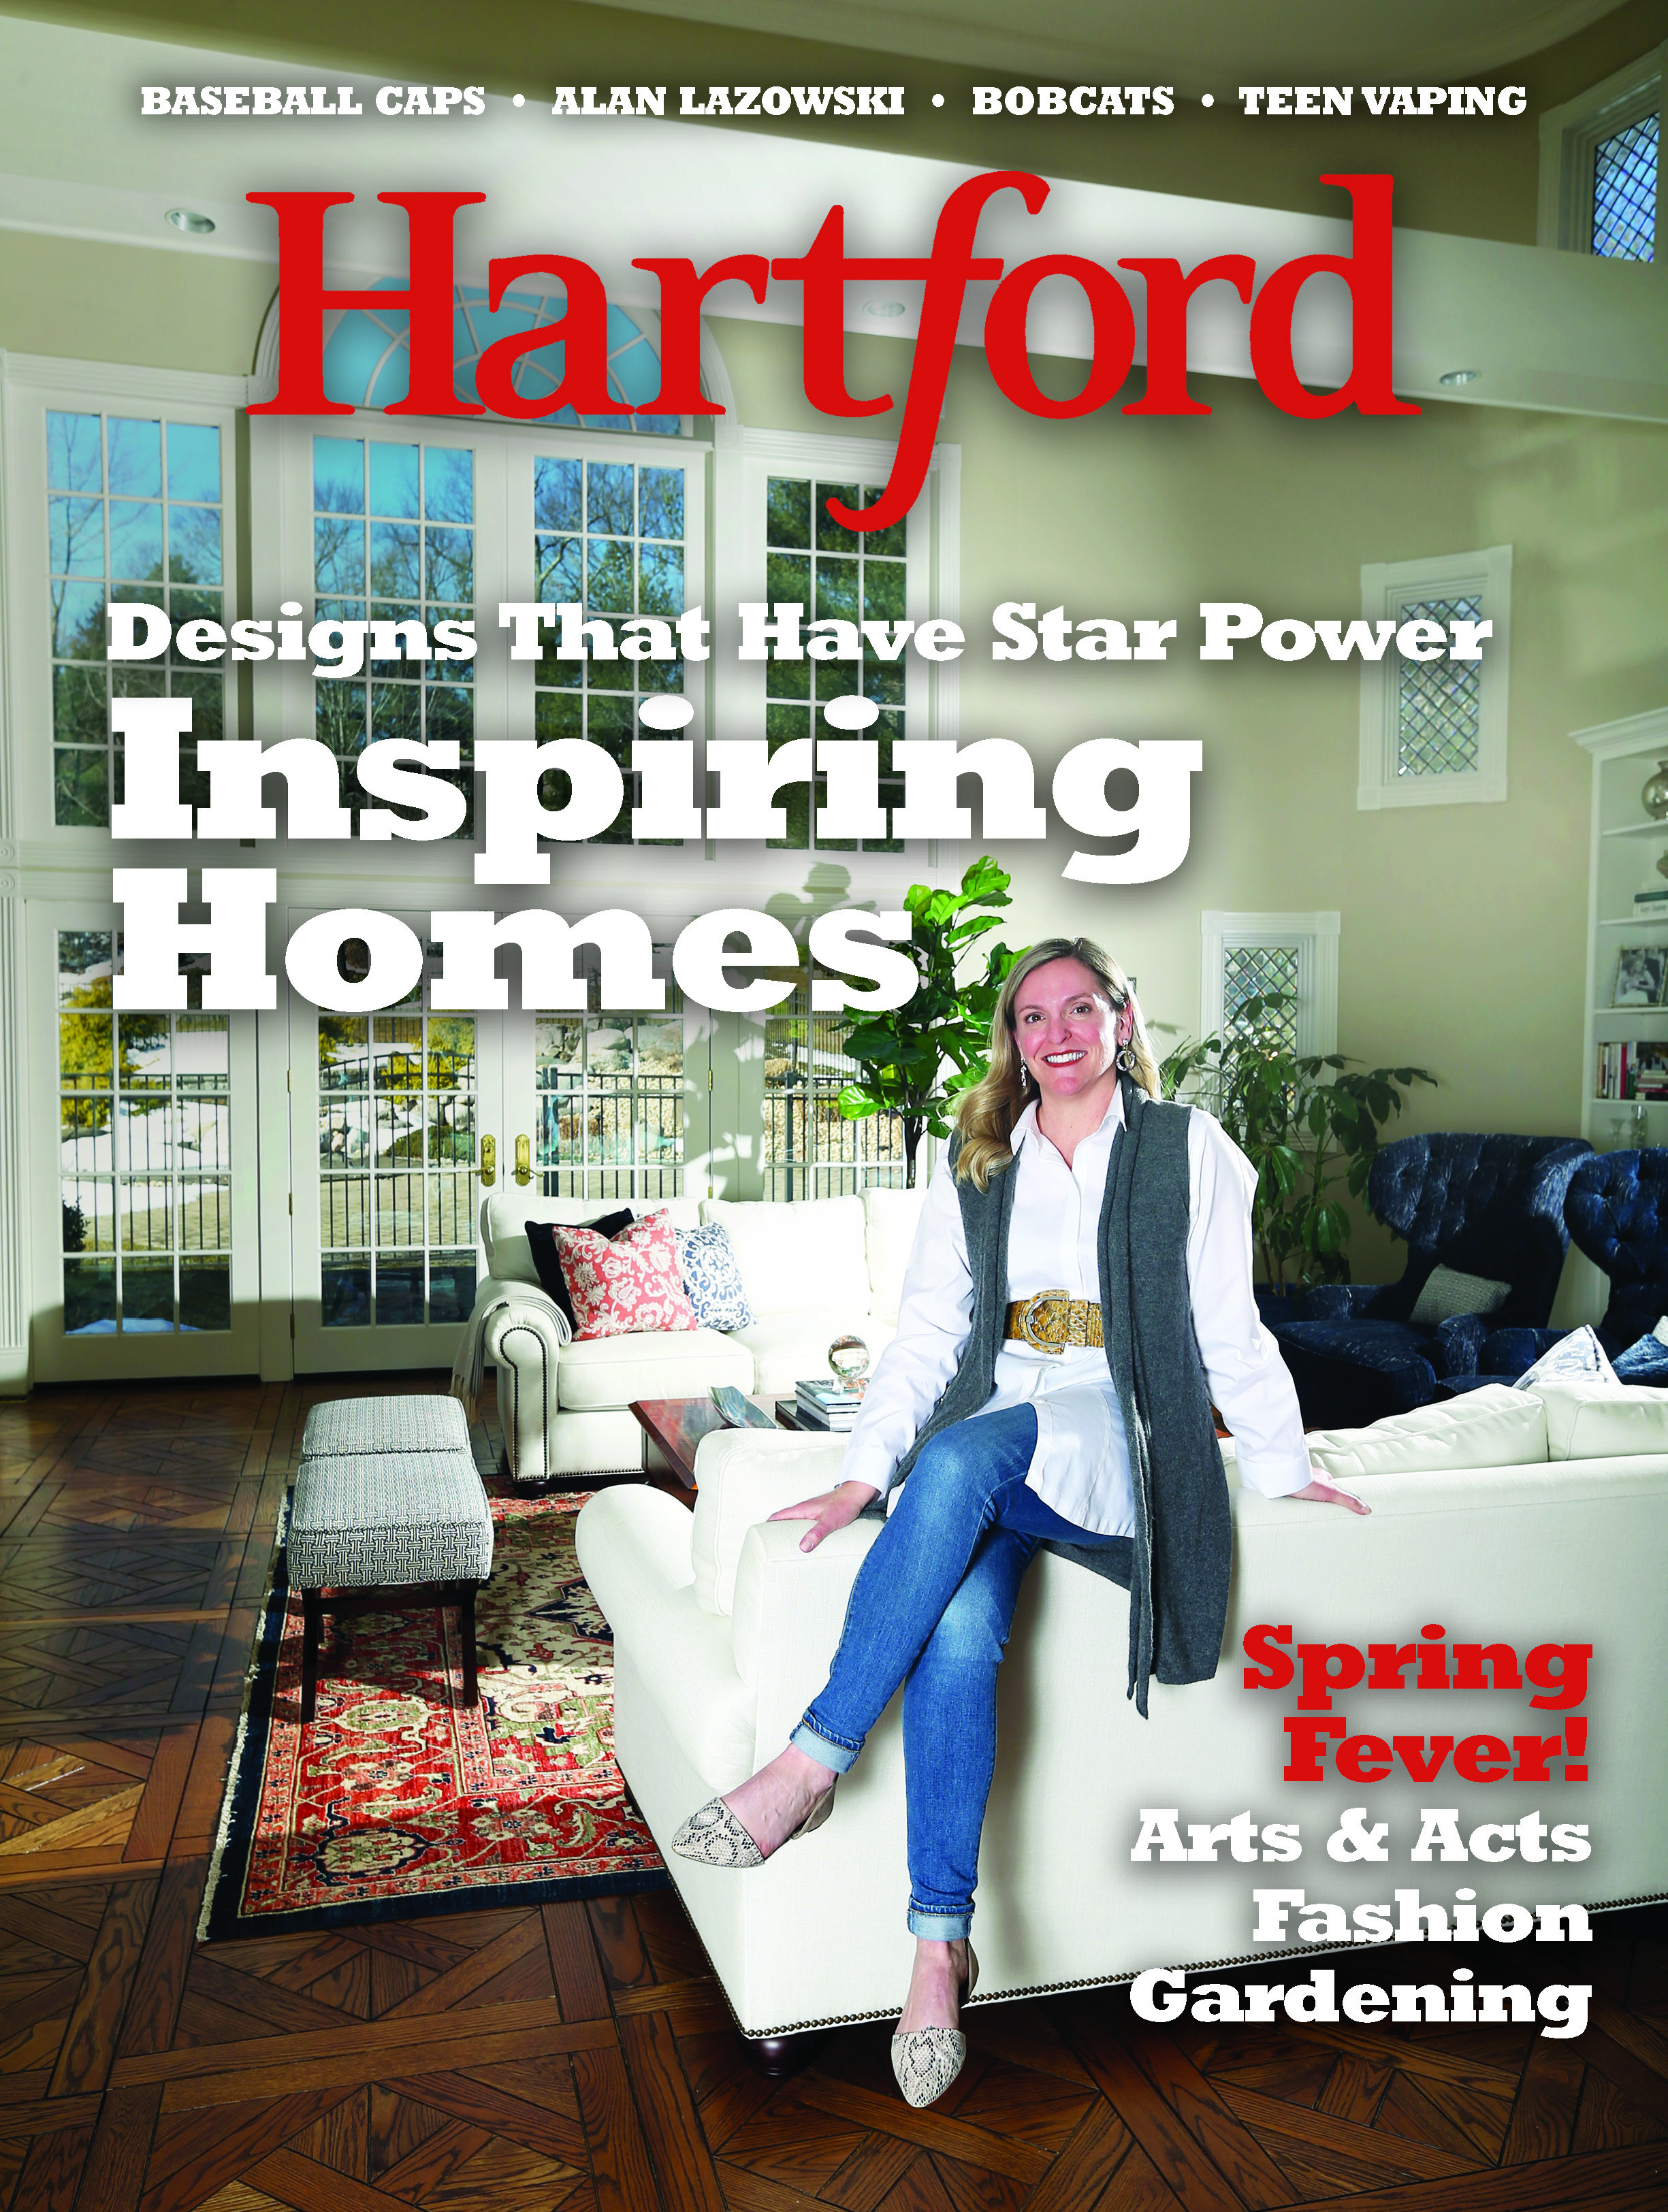 Hartford Magazine, April 2019